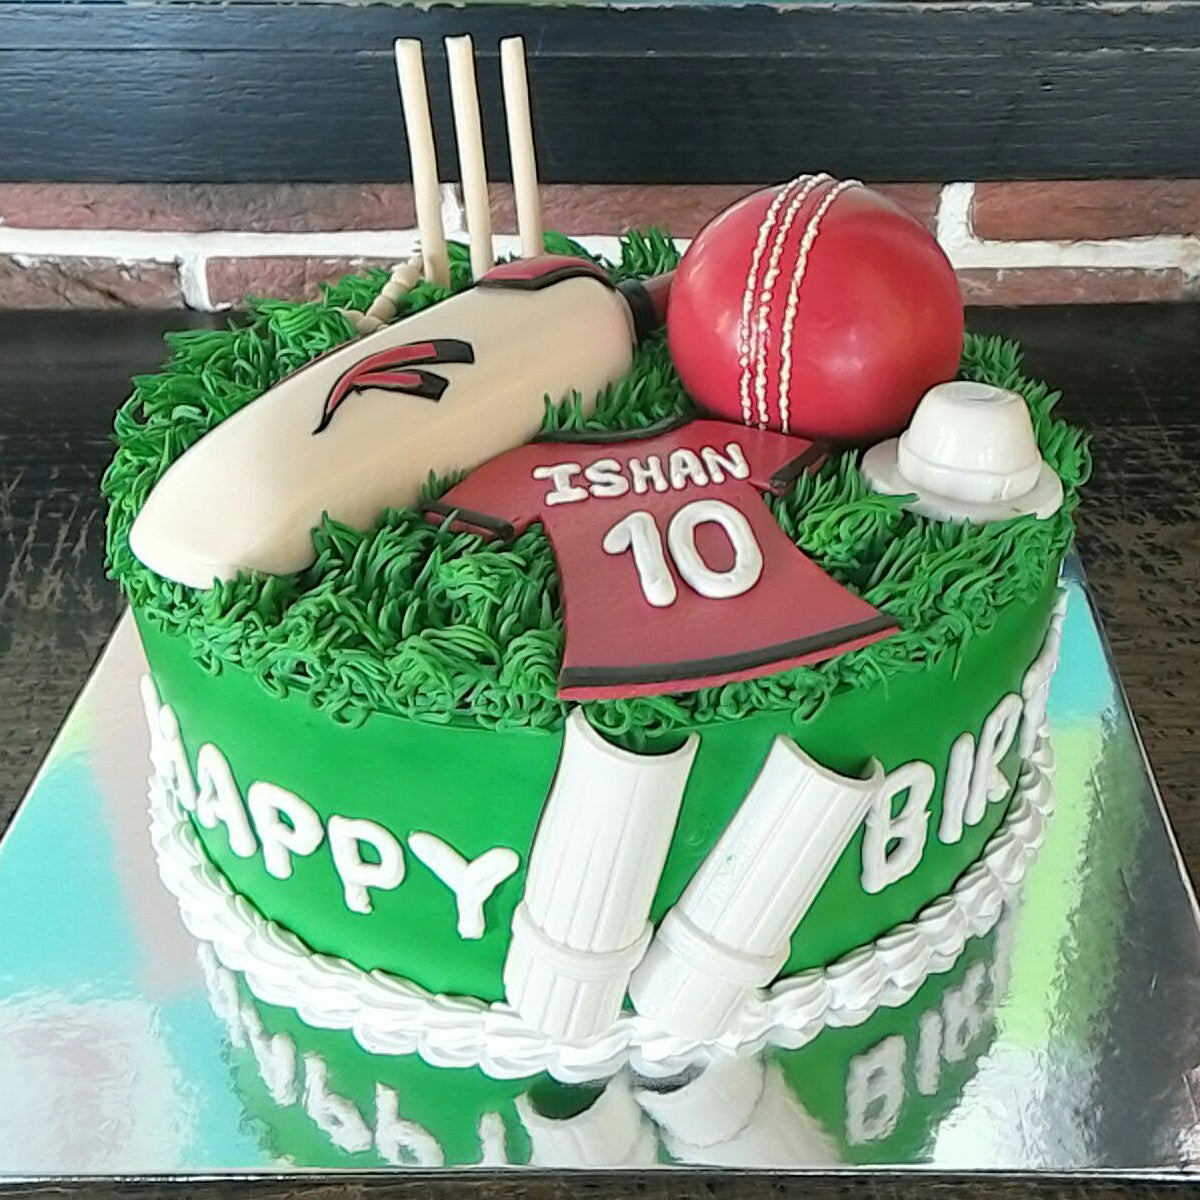 Cricket Lover Cake - CWD